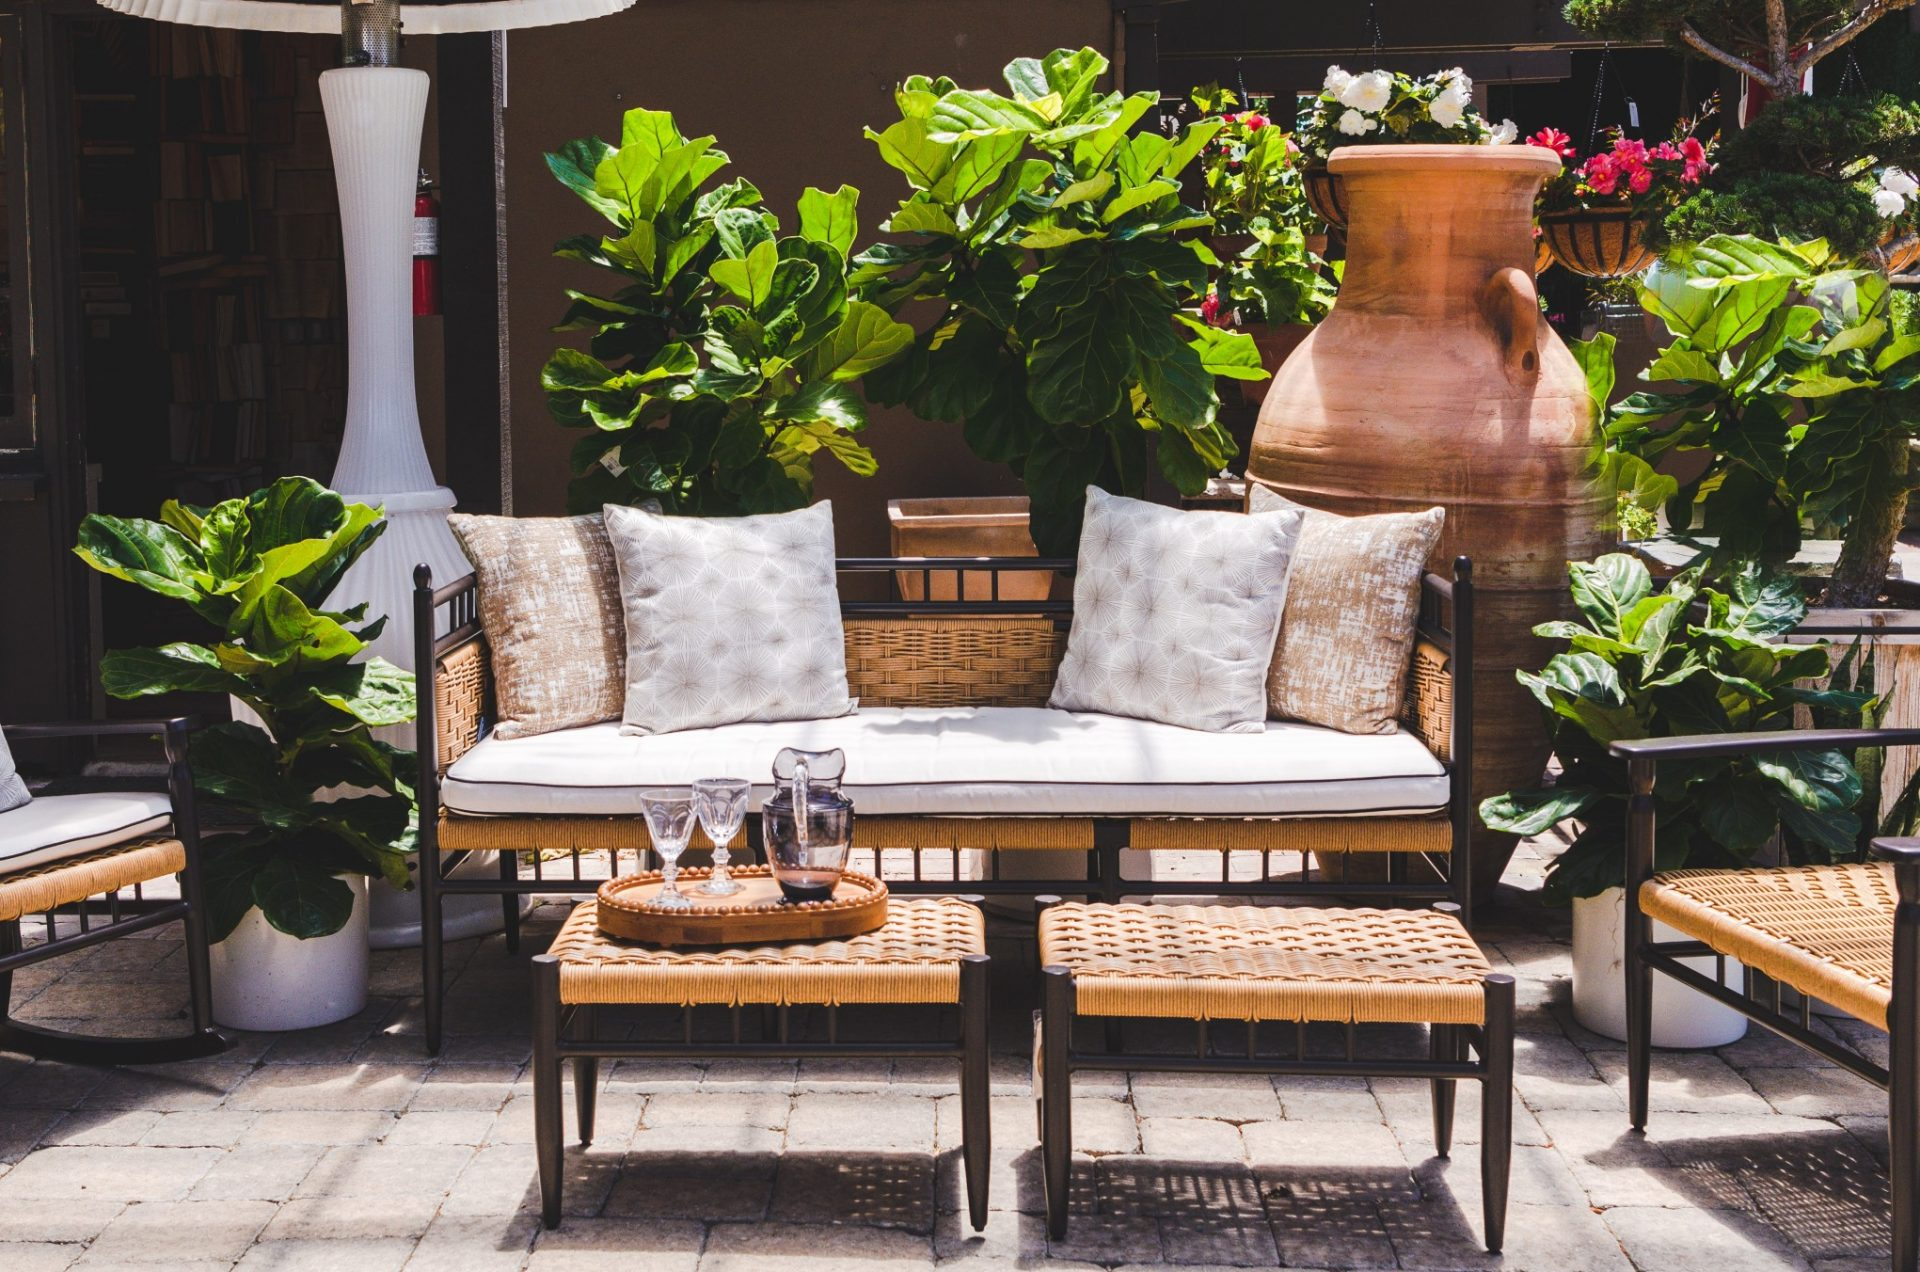 nominated-outdoor-living-space-comfortable-inviting-patio-furniture-with-plants_t20_Jzzk3E